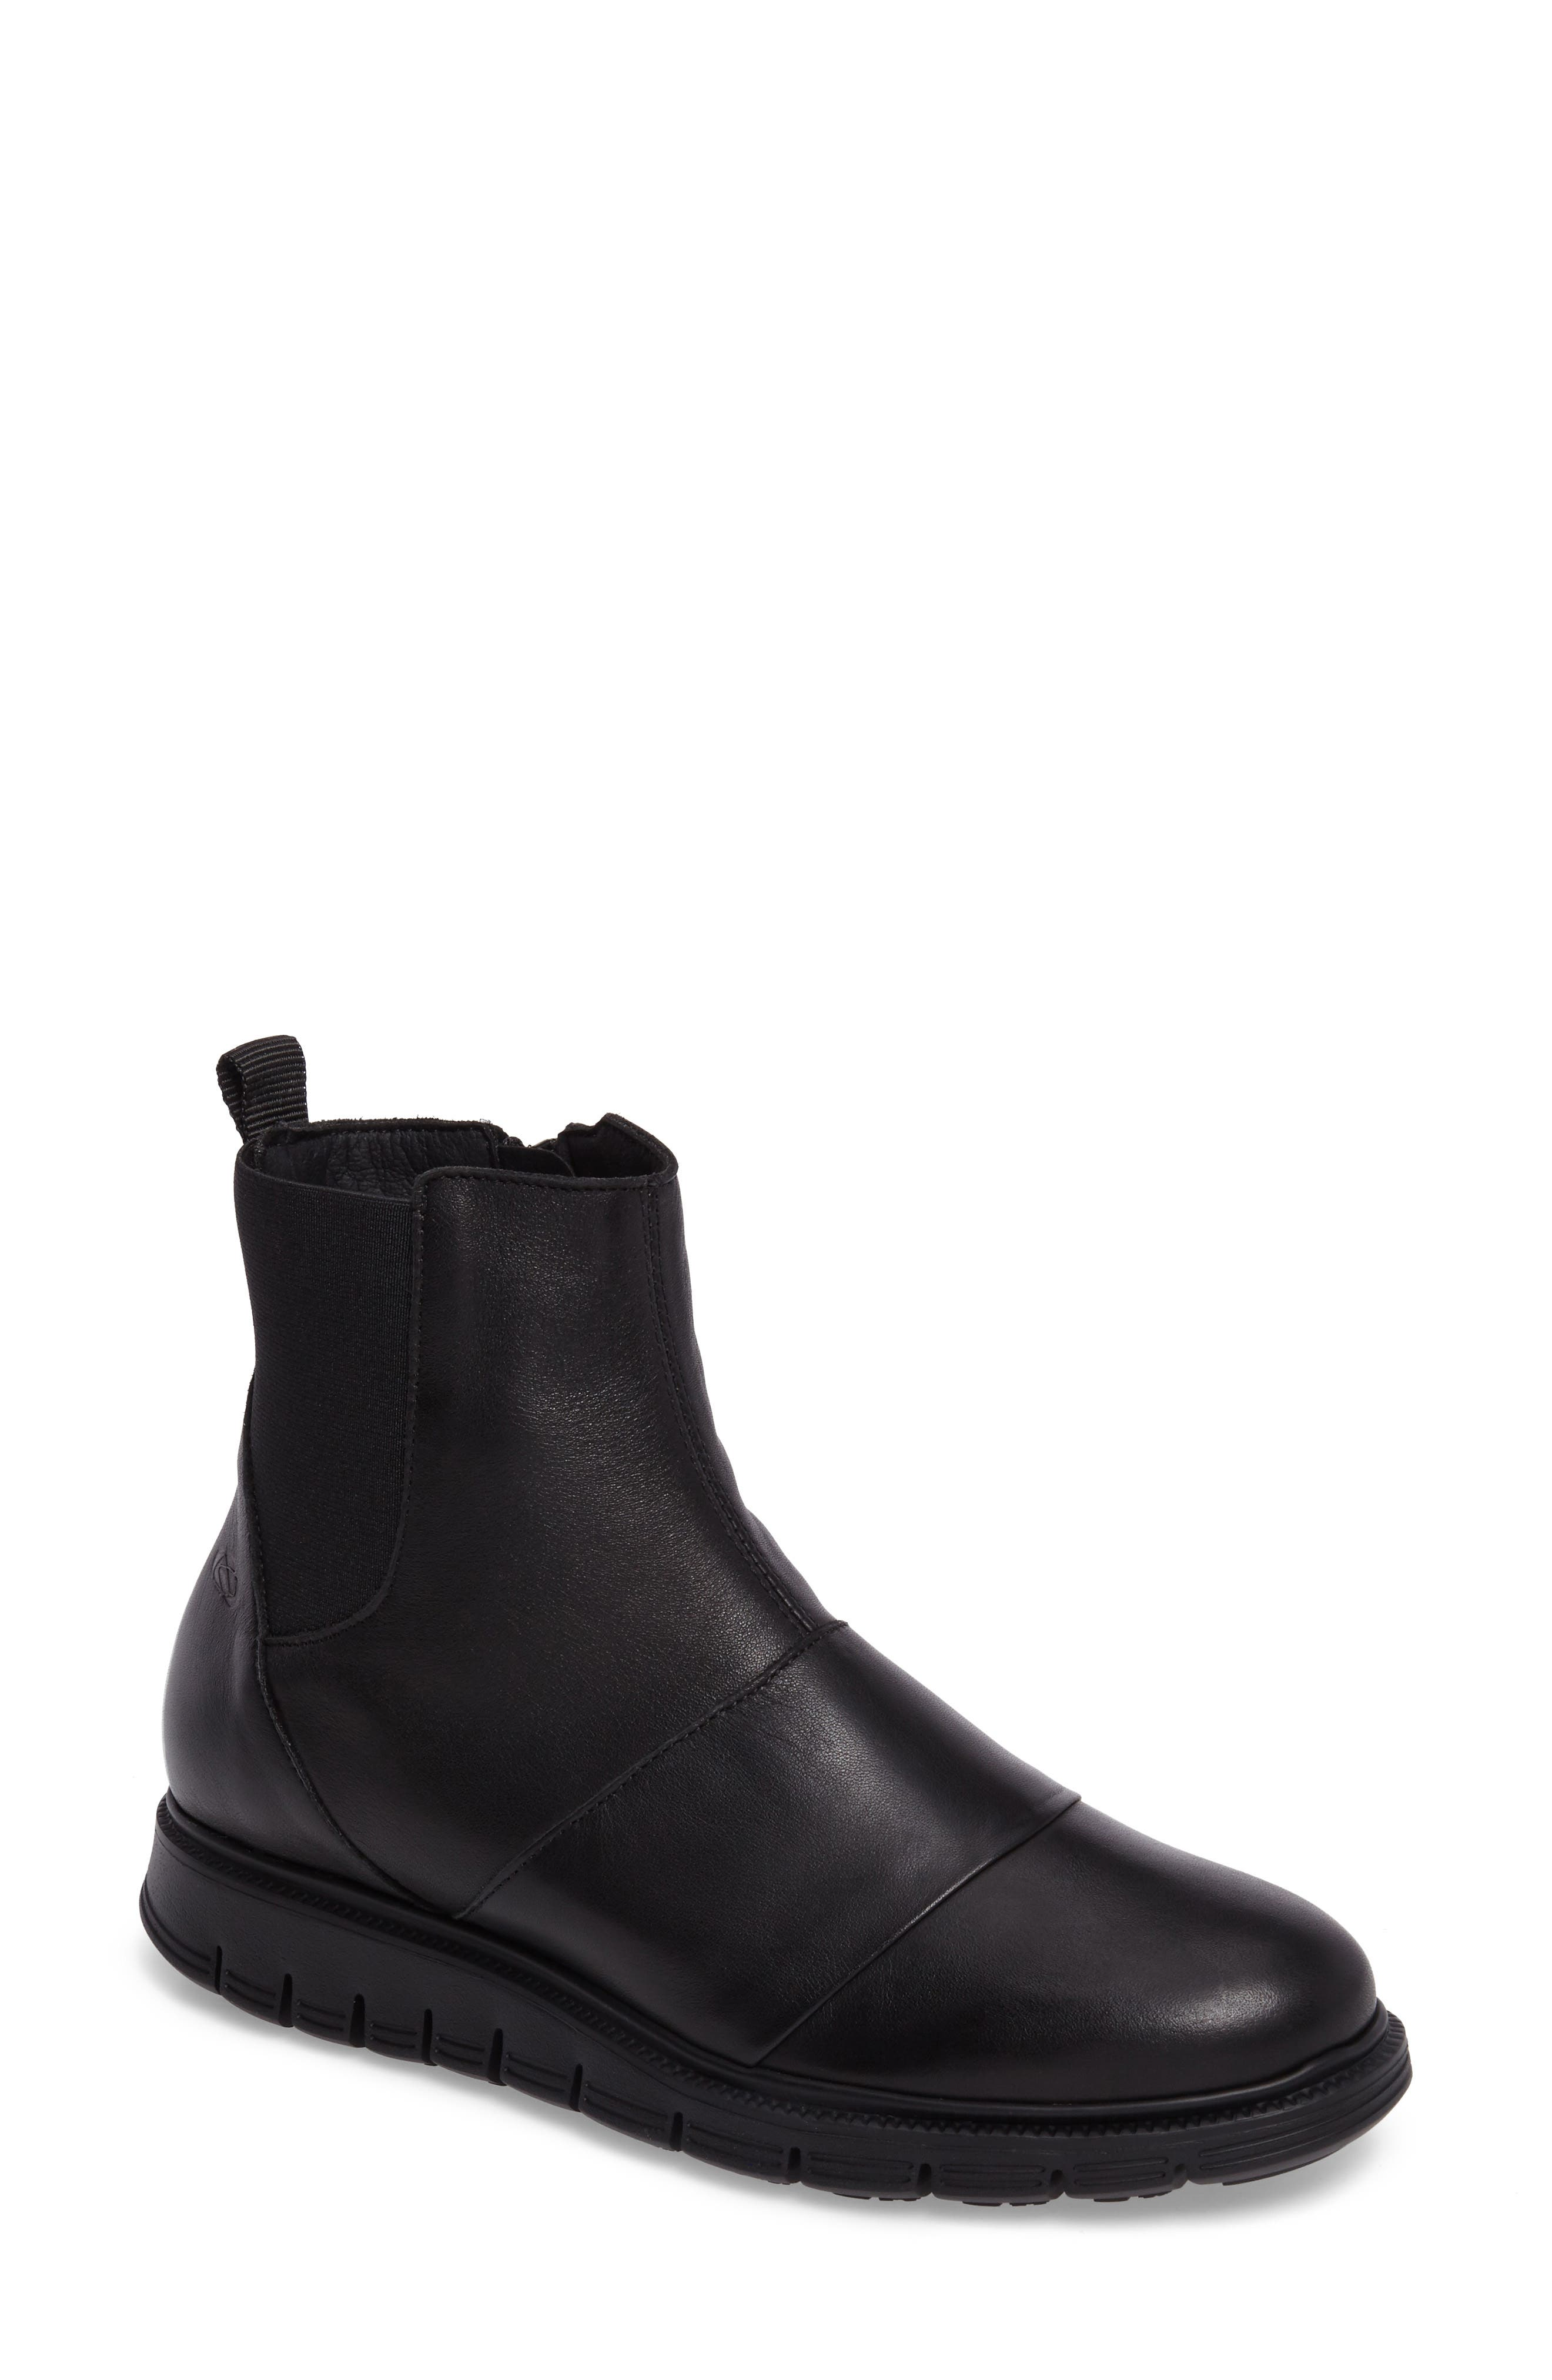 Gish Water-Resistant Bootie,                             Main thumbnail 1, color,                             Black Leather